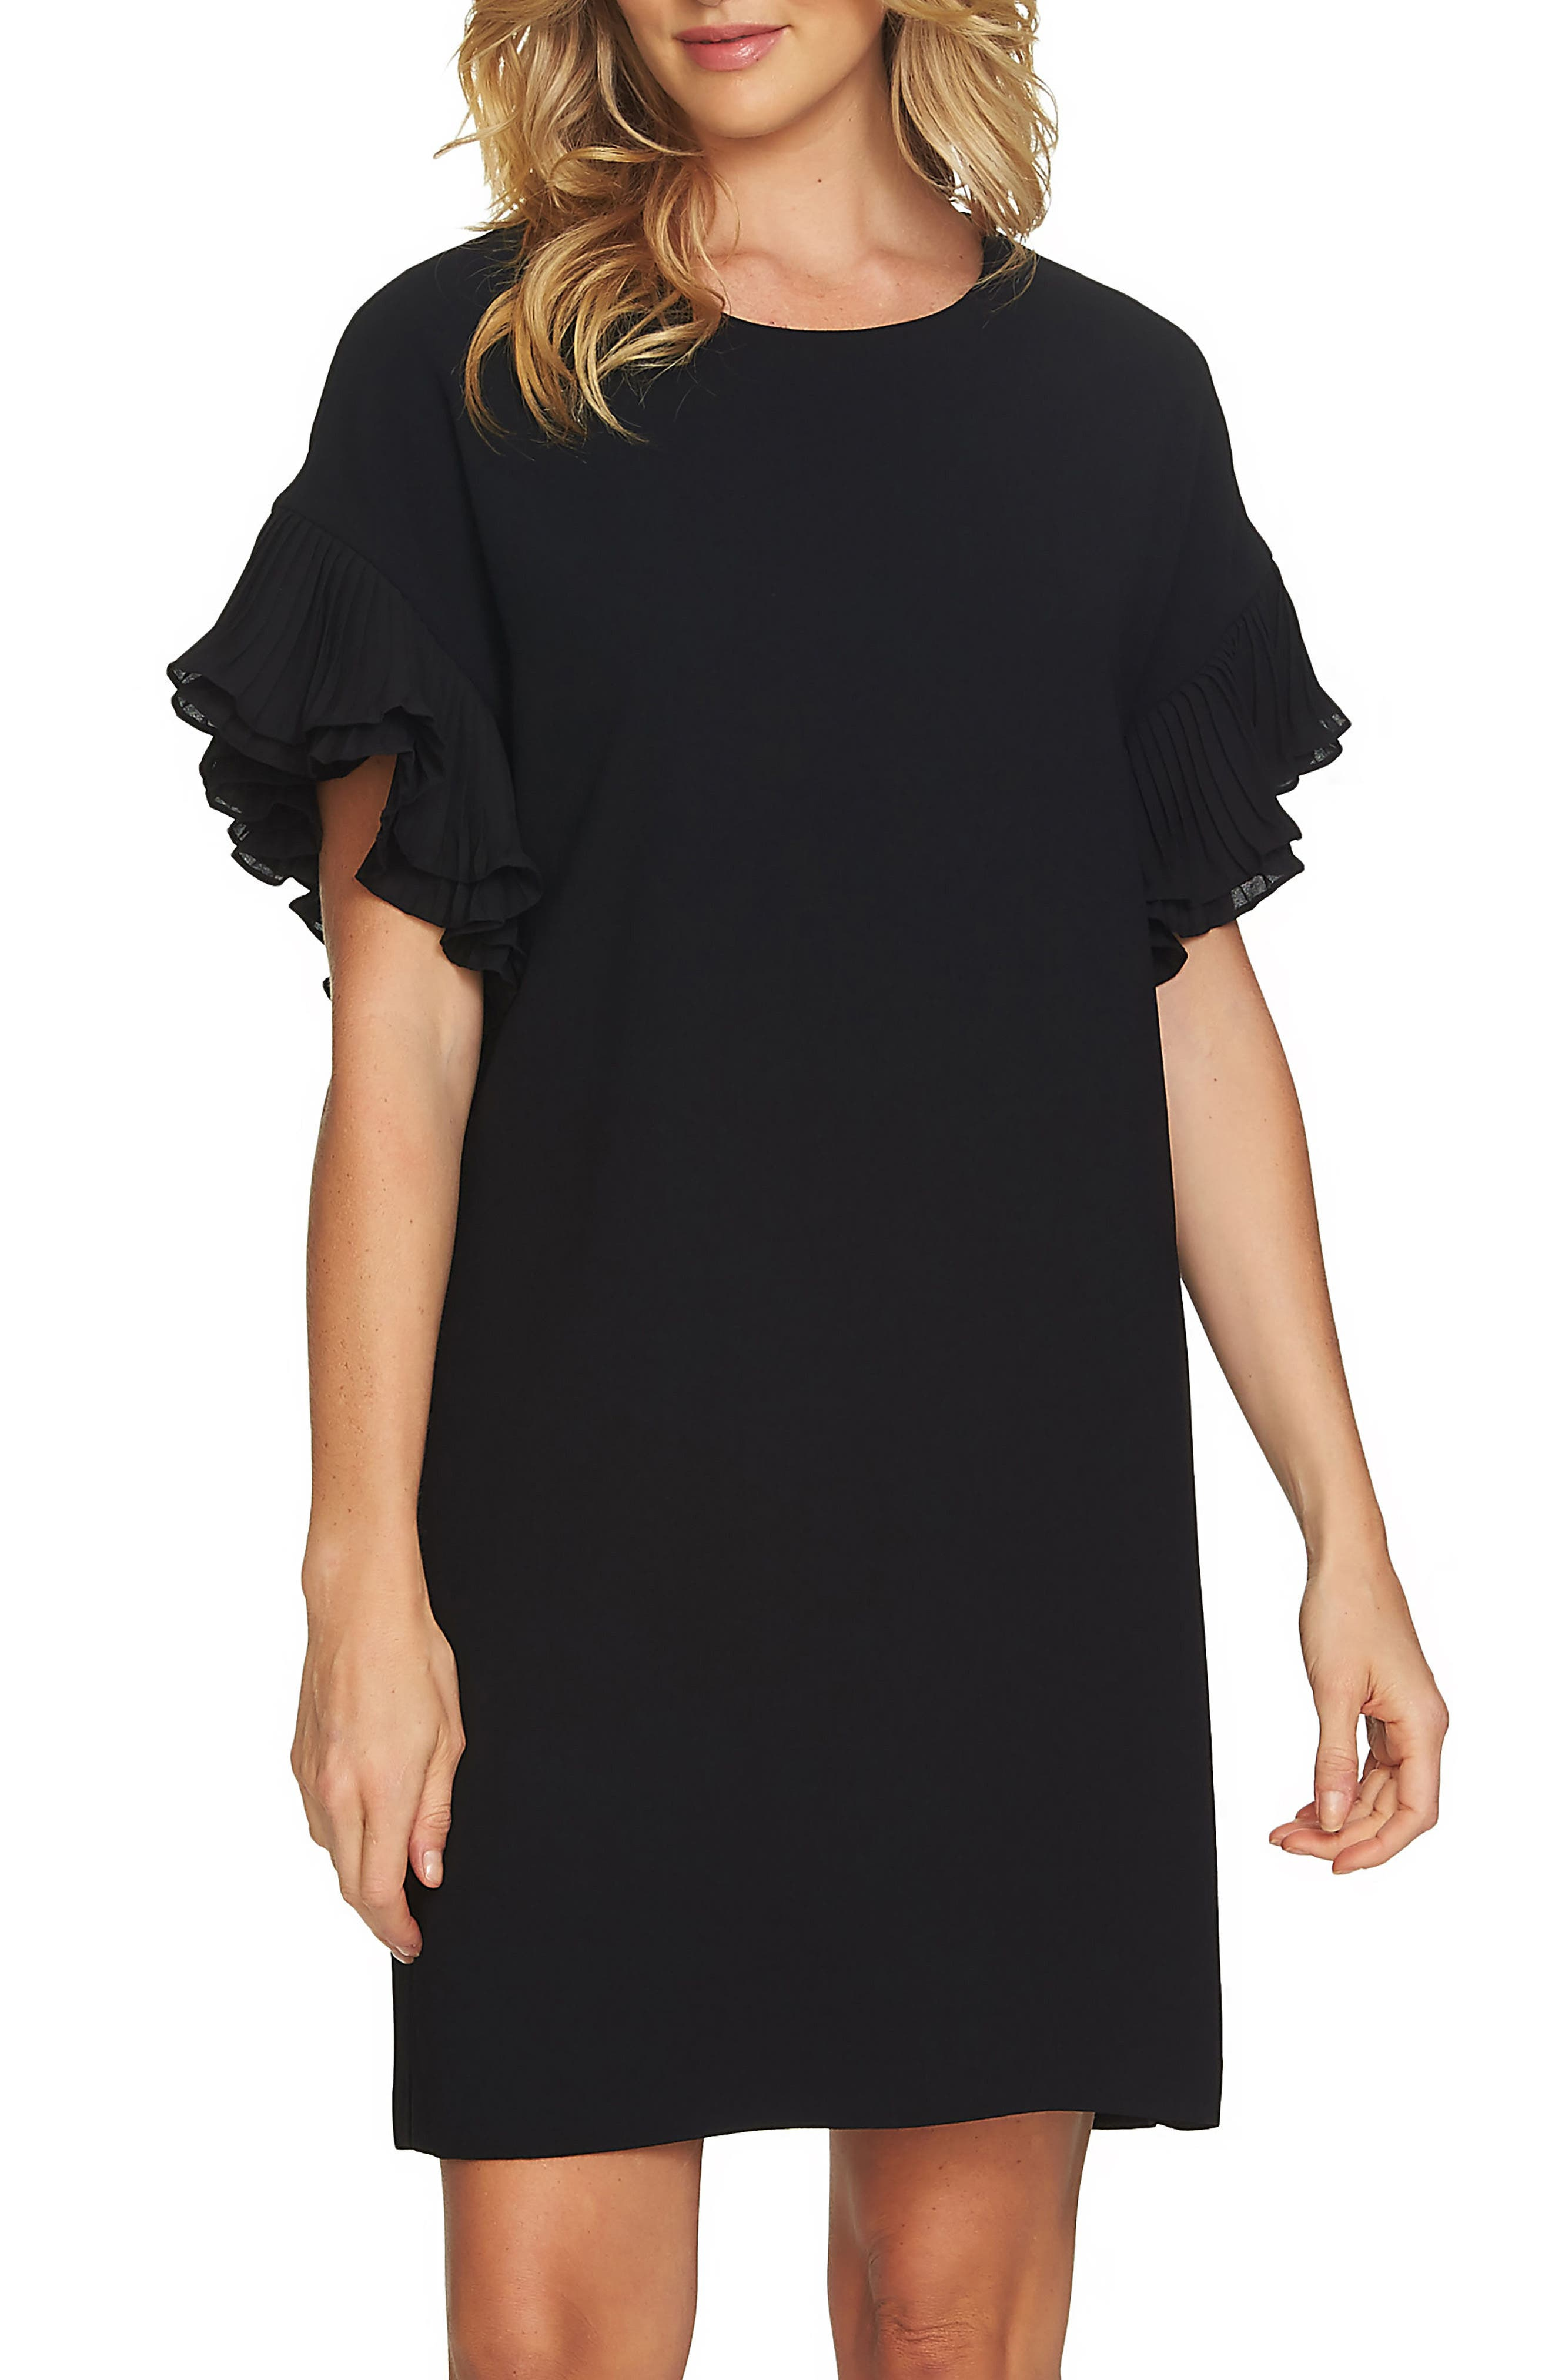 Cece Tiered Pleated Crepe Shift Dress, Black